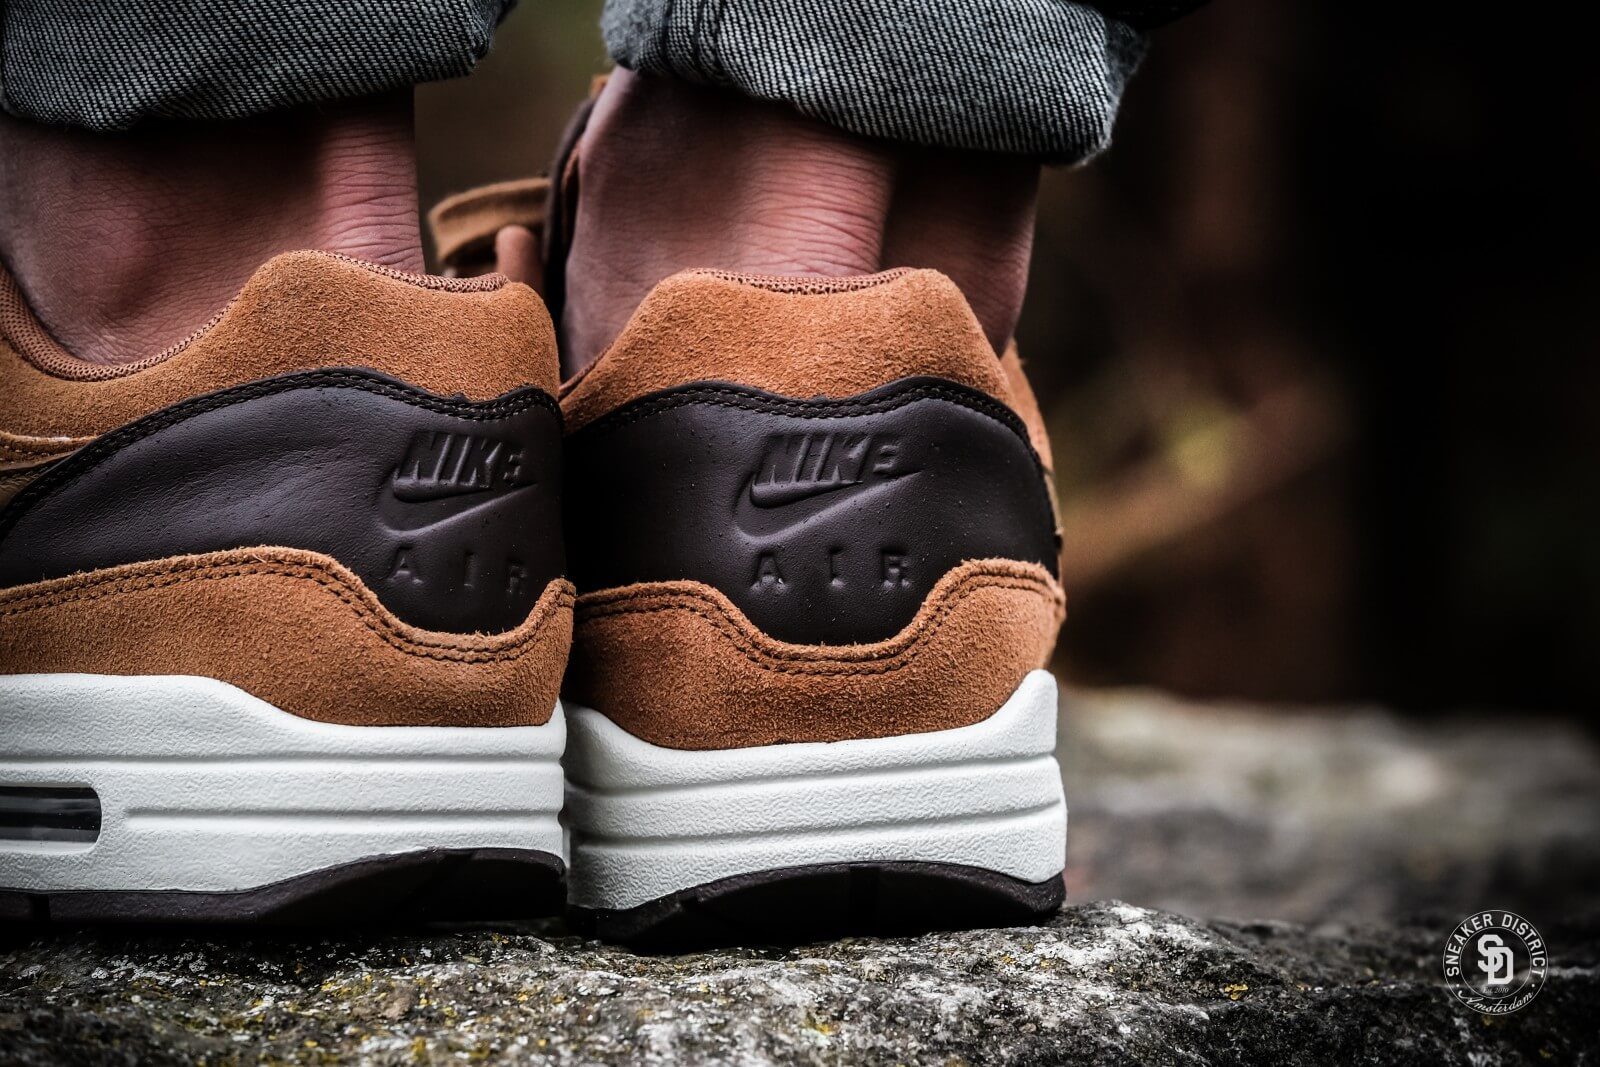 Nike Air Max 1 Premium Leather Ale Marron/Oren Beige Baroque Marron